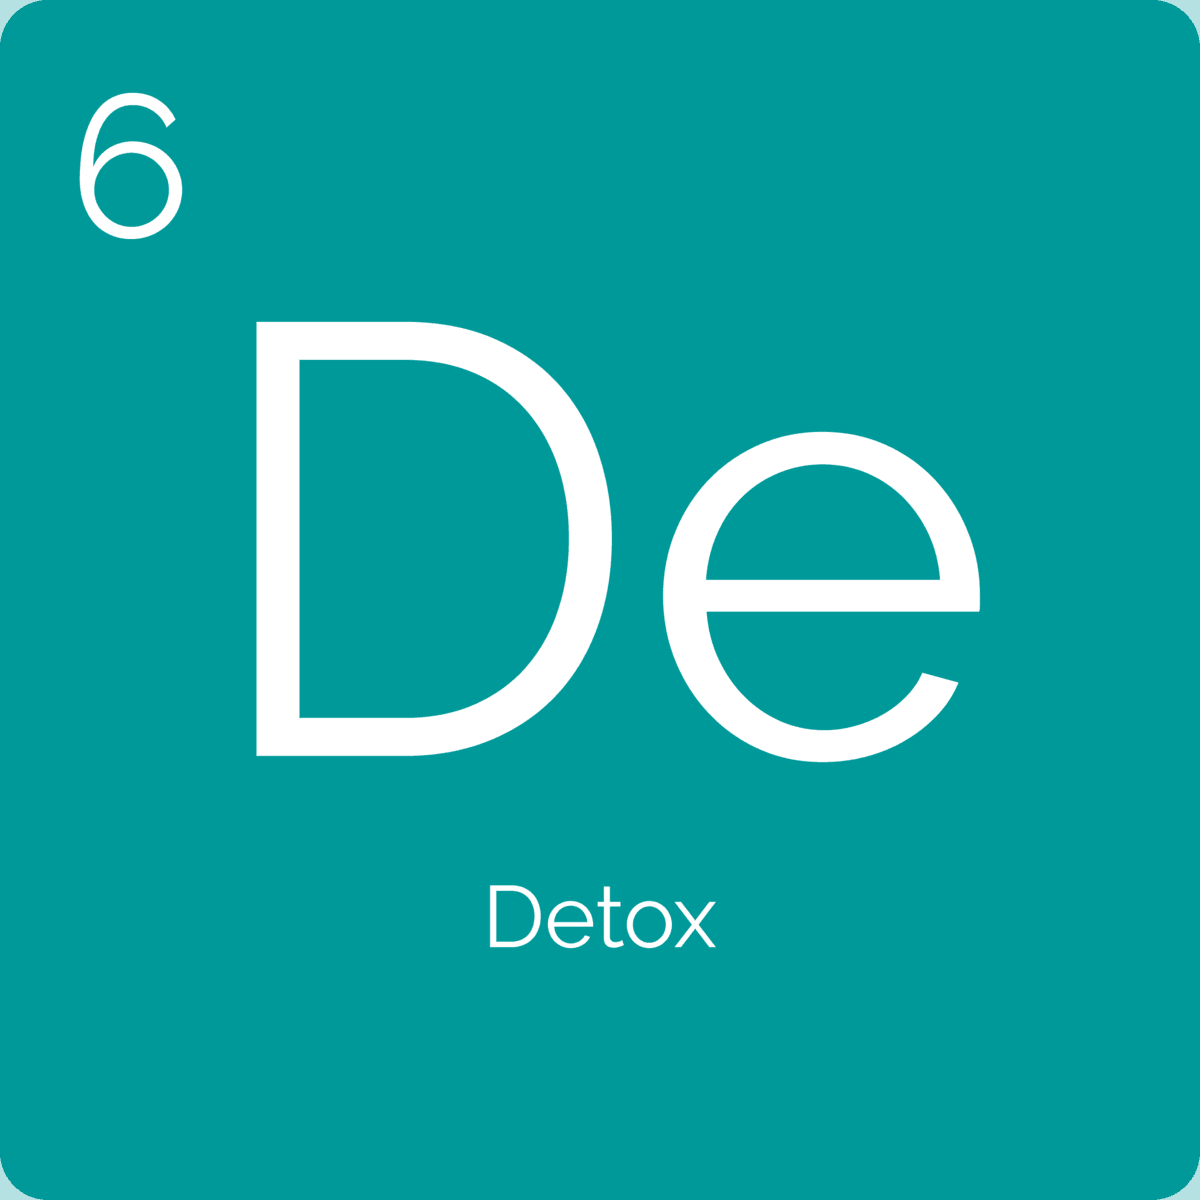 detox assessment tools